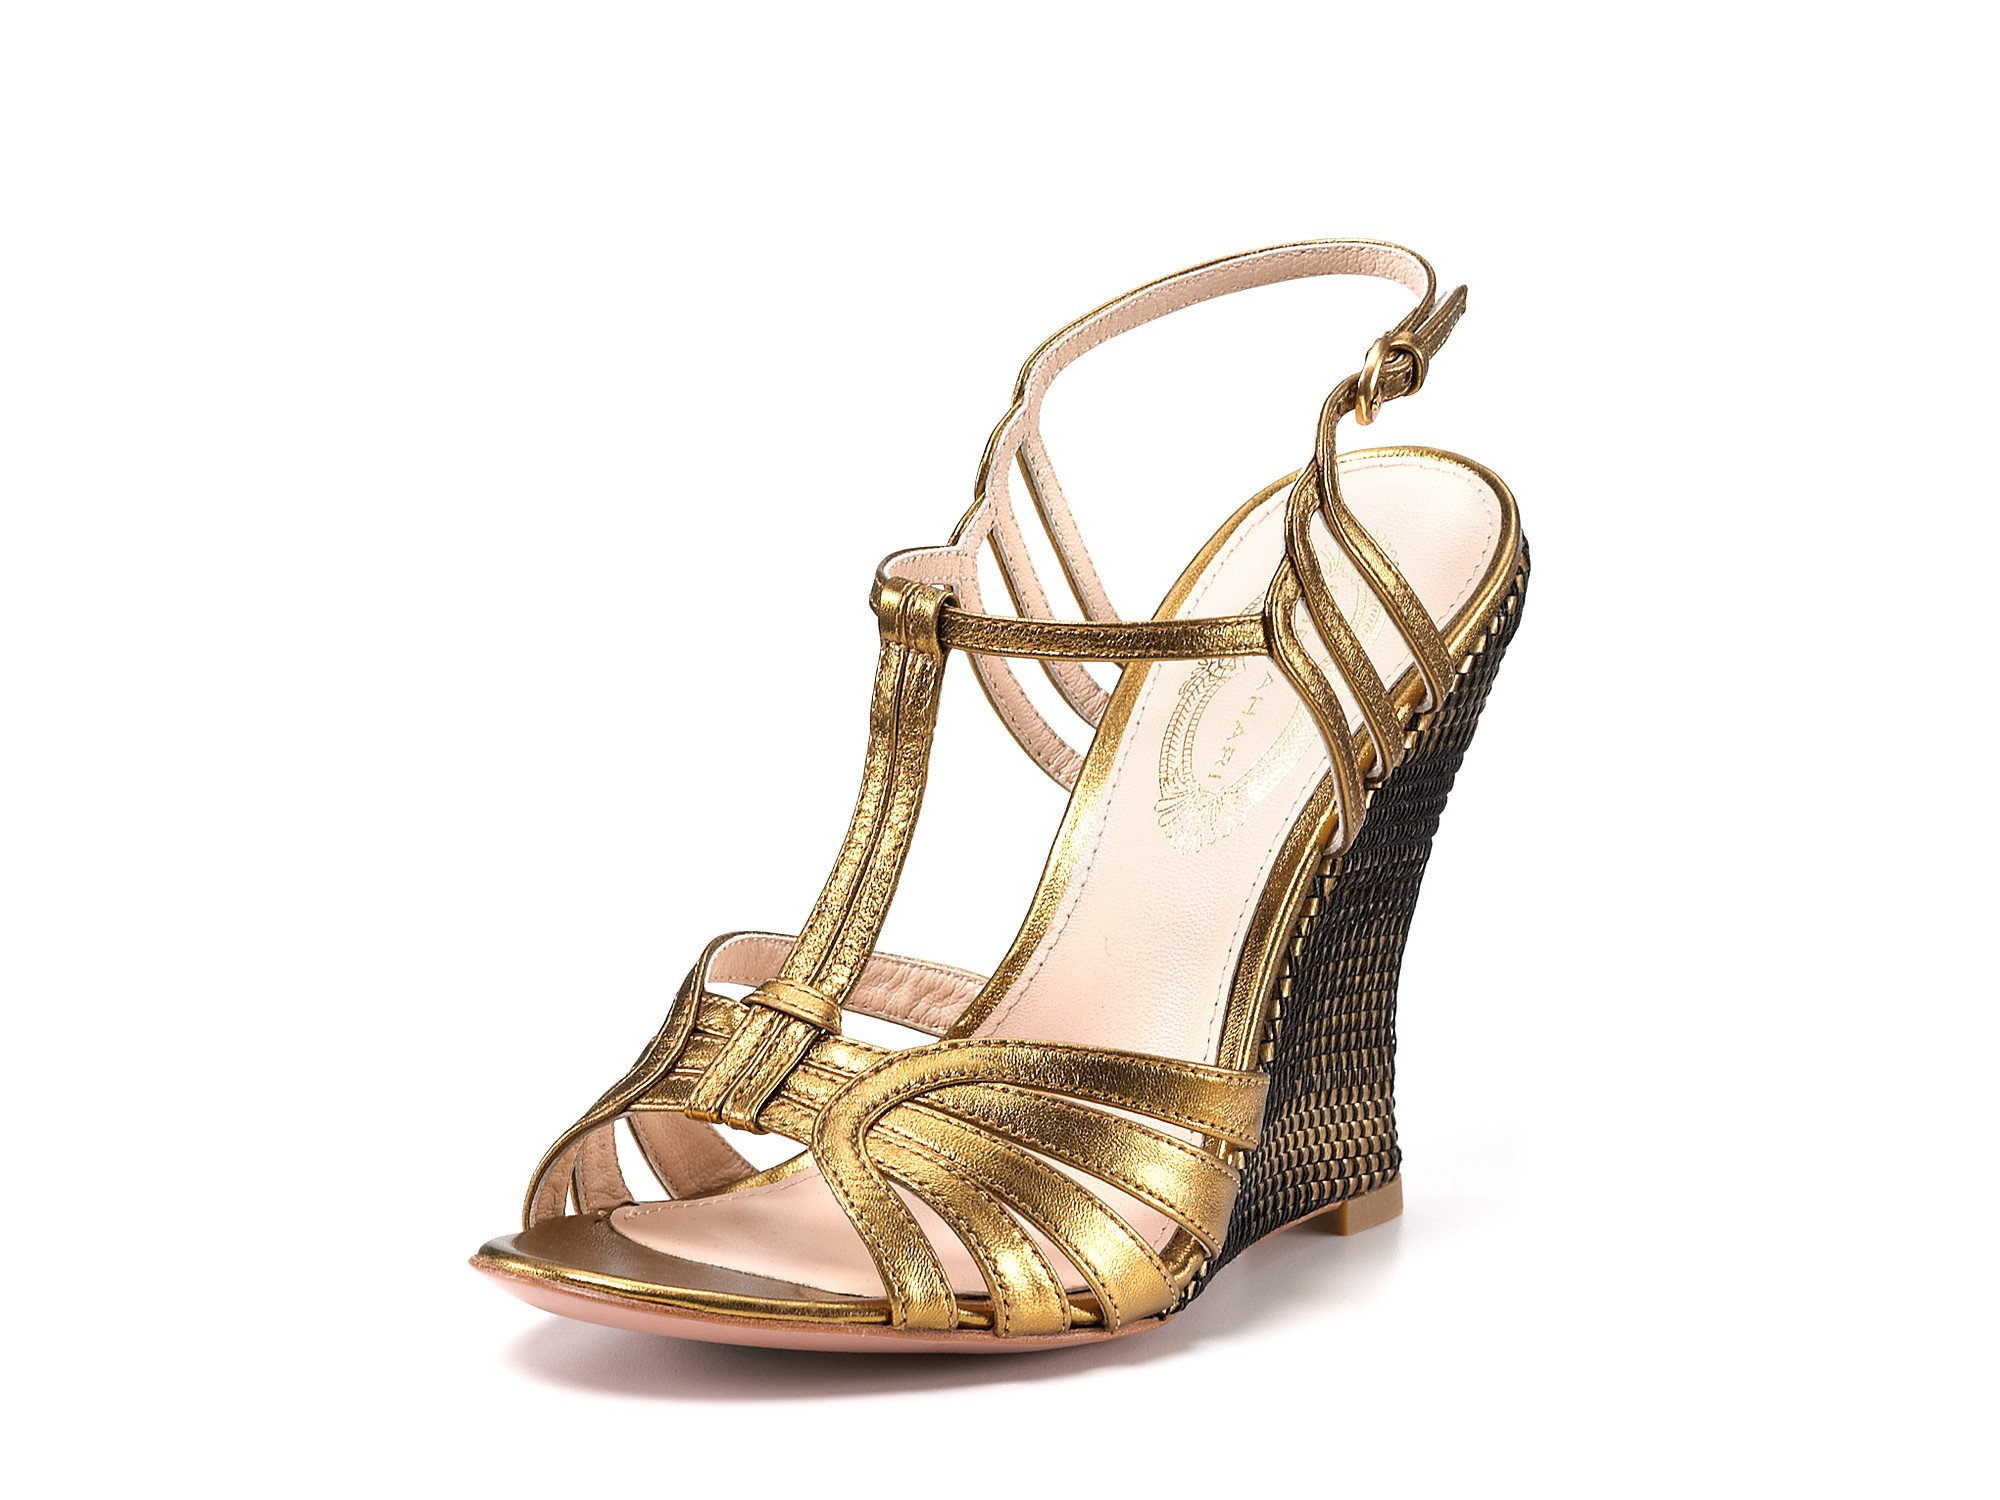 elie tahari sandals jonie wedge in gold bronze lyst